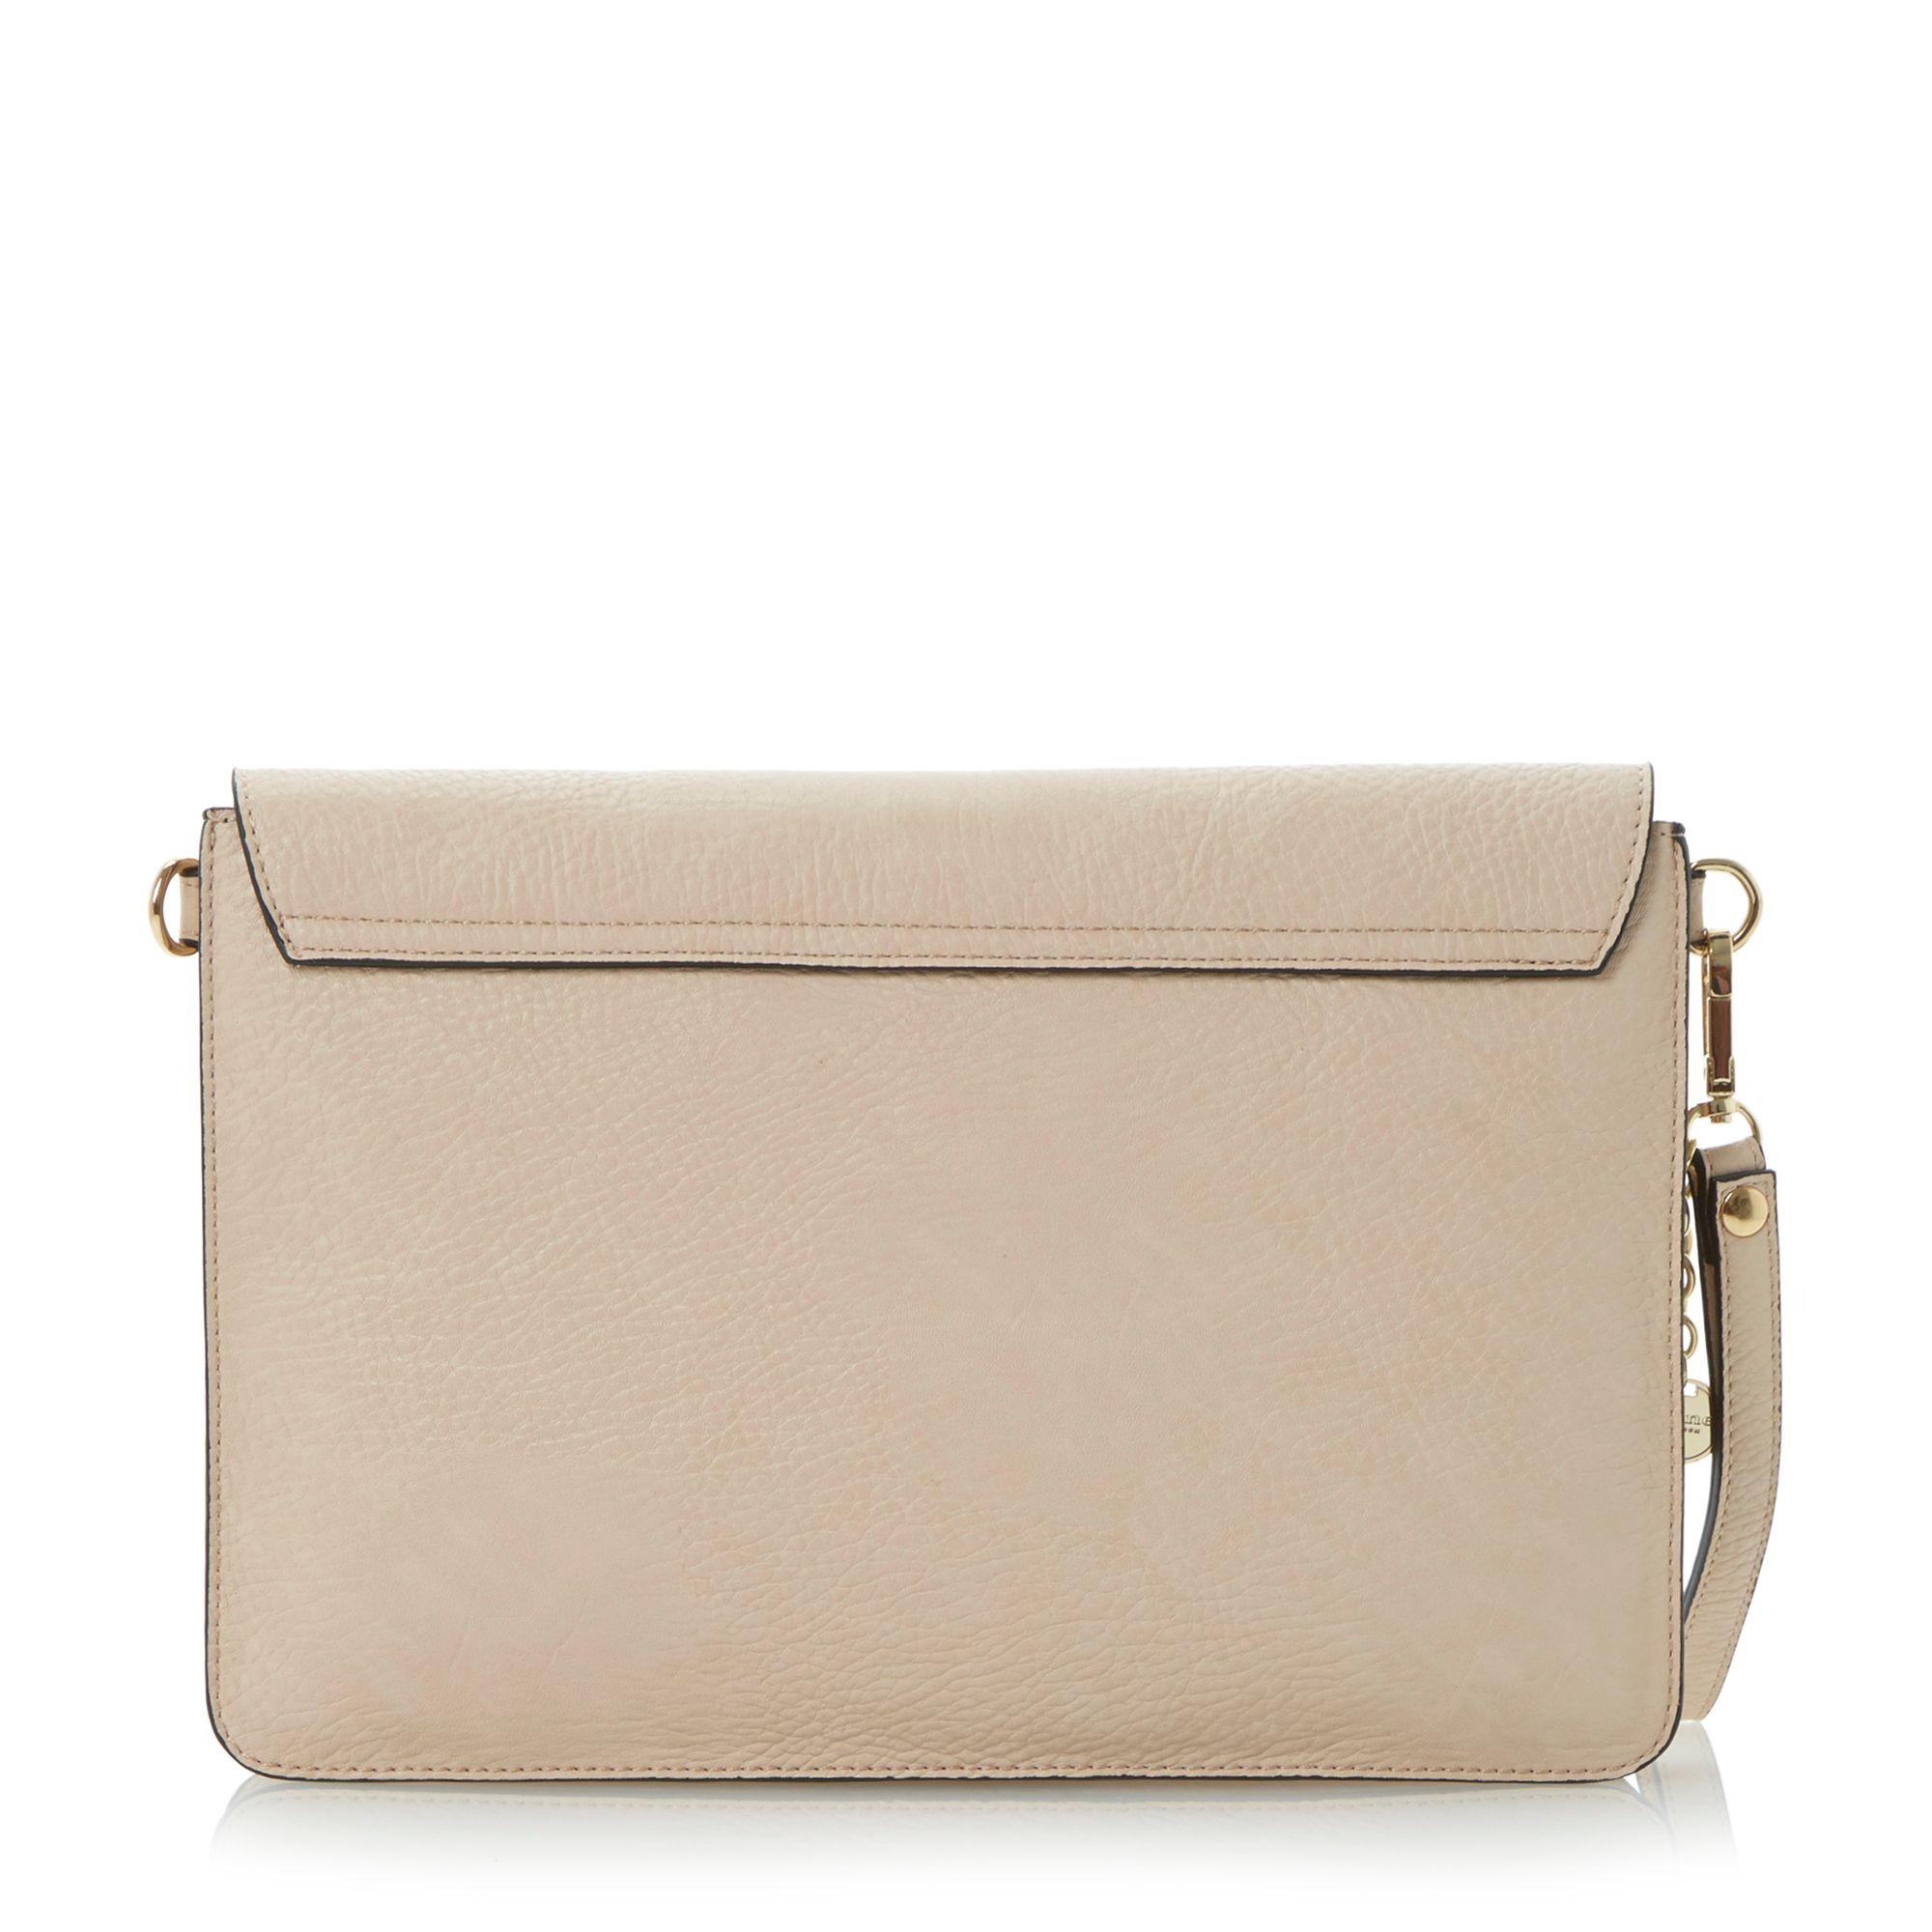 Enlightening envelope bar clutch bag